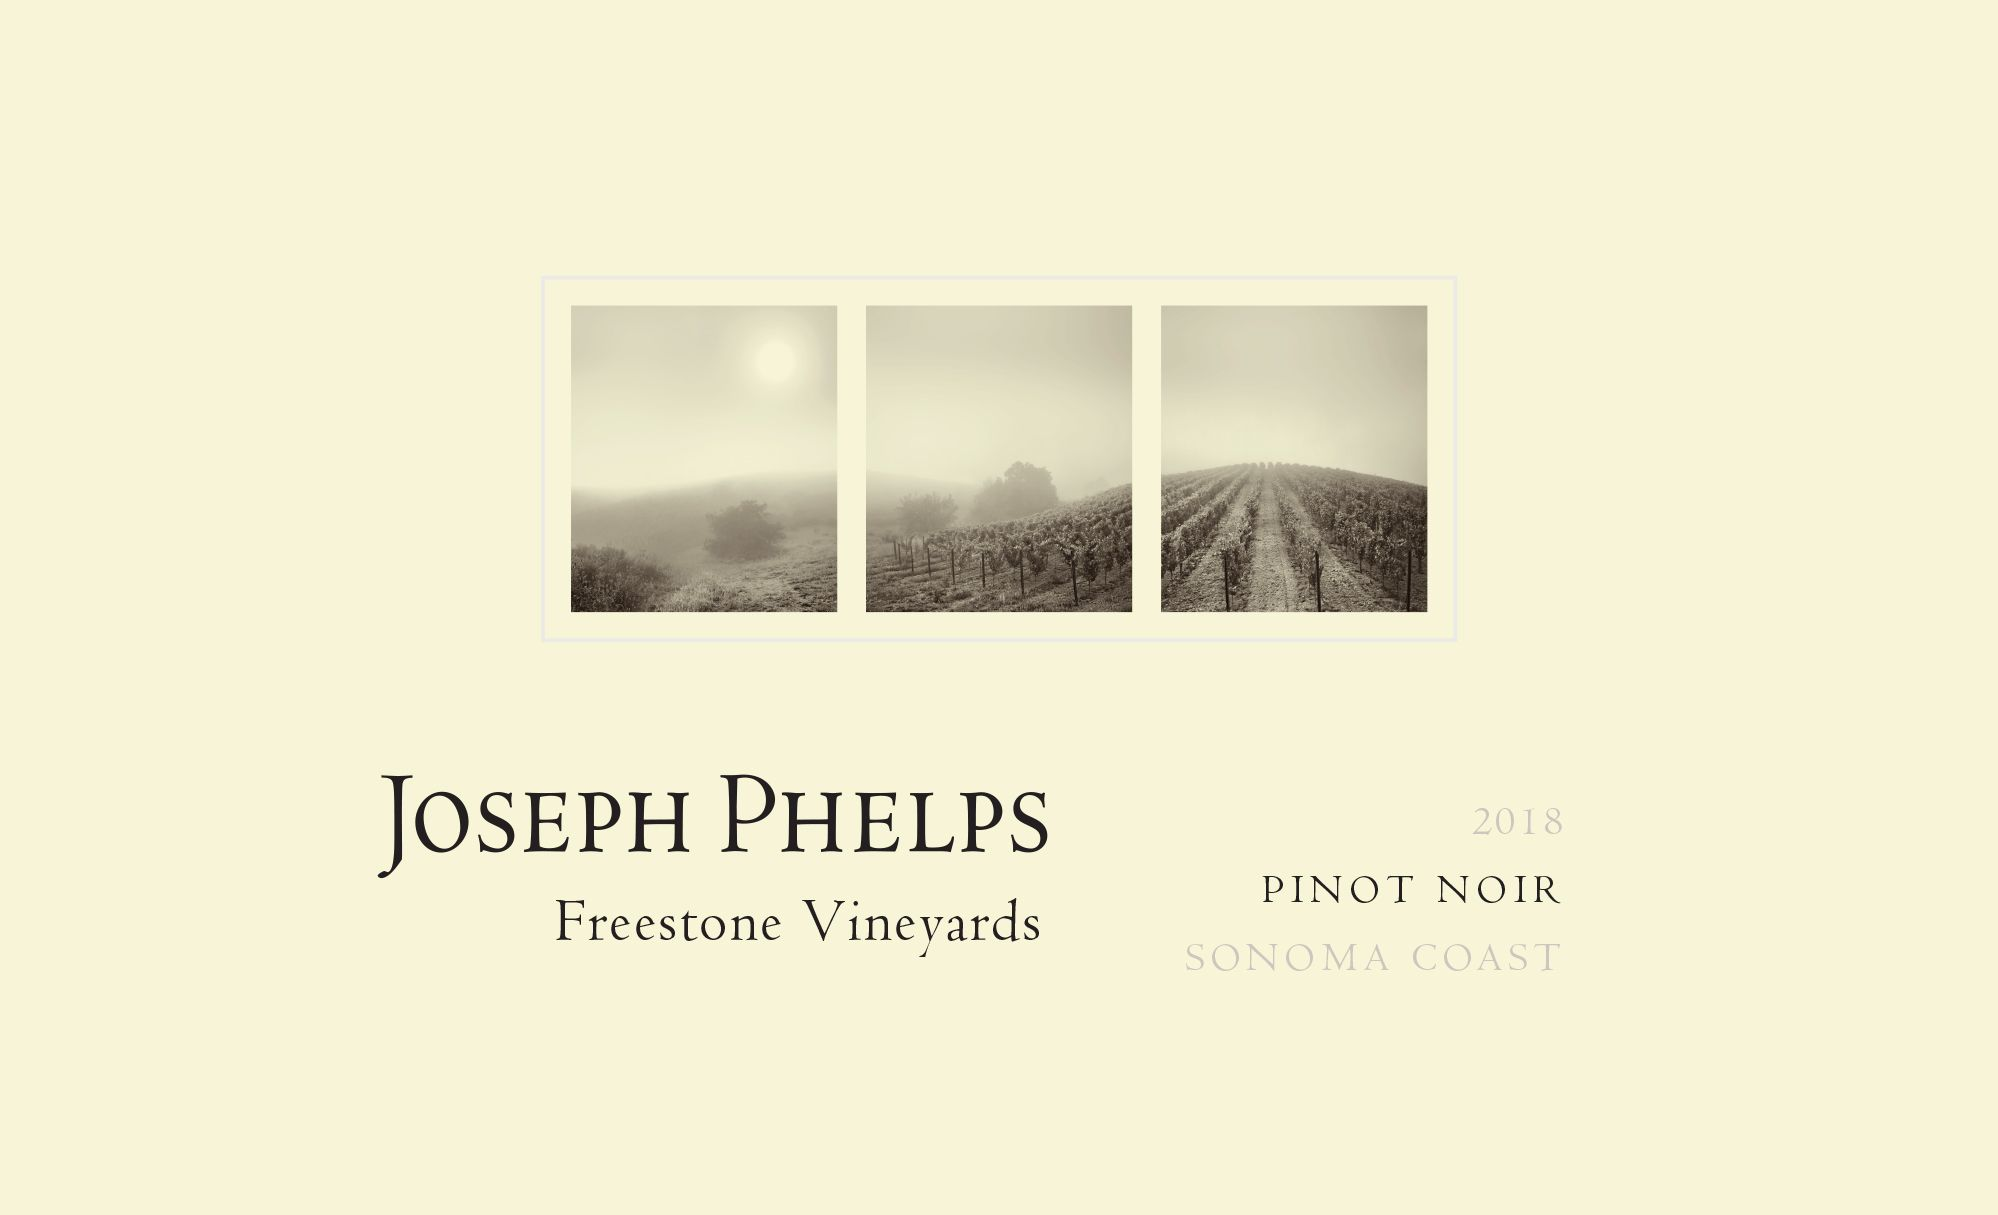 Joseph Phelps Freestone Vineyards Sonoma Coast Pinot Noir 2018  Front Label